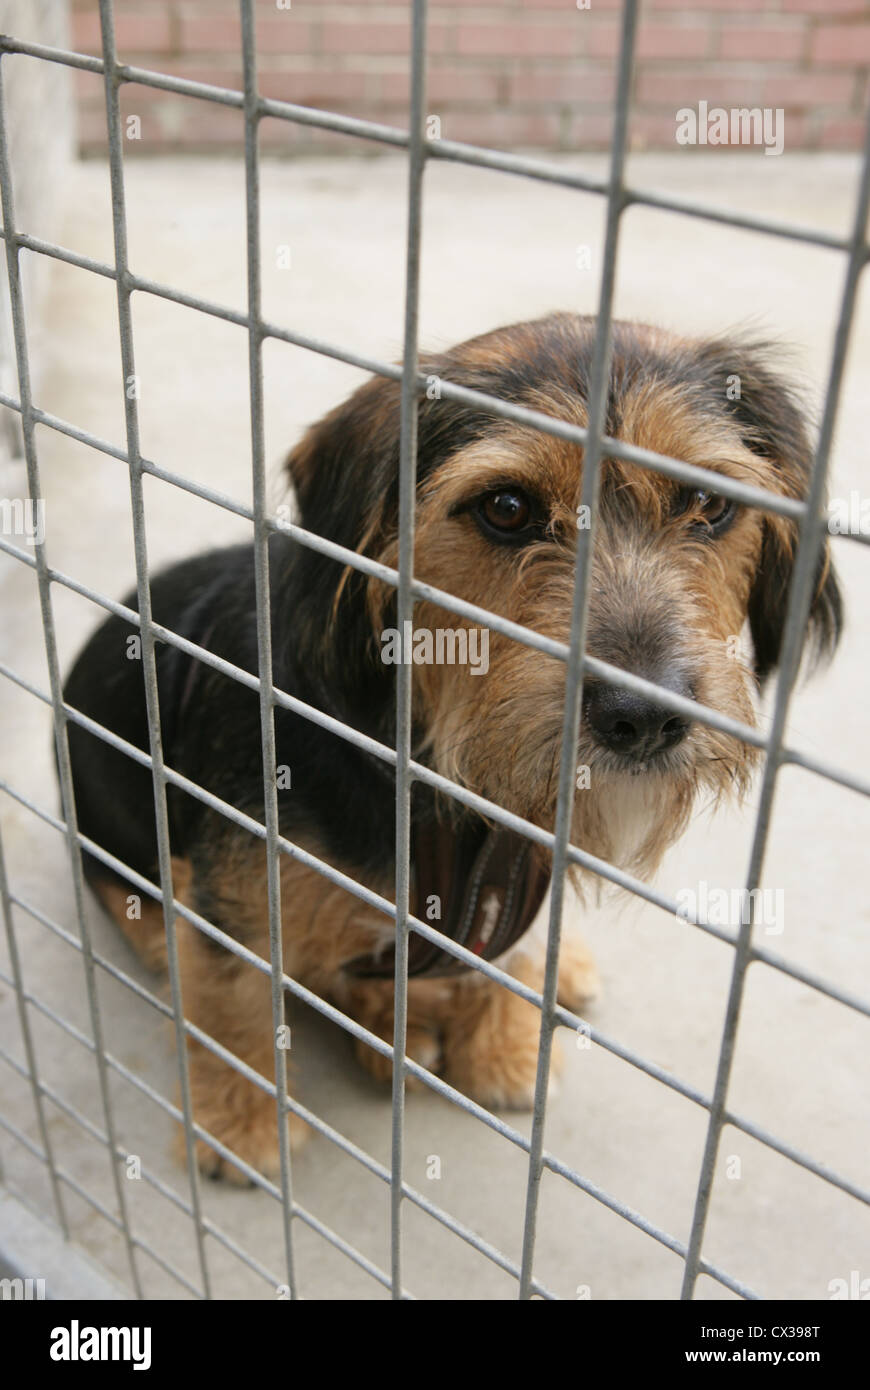 Sad Dog Cage High Resolution Stock Photography And Images Alamy